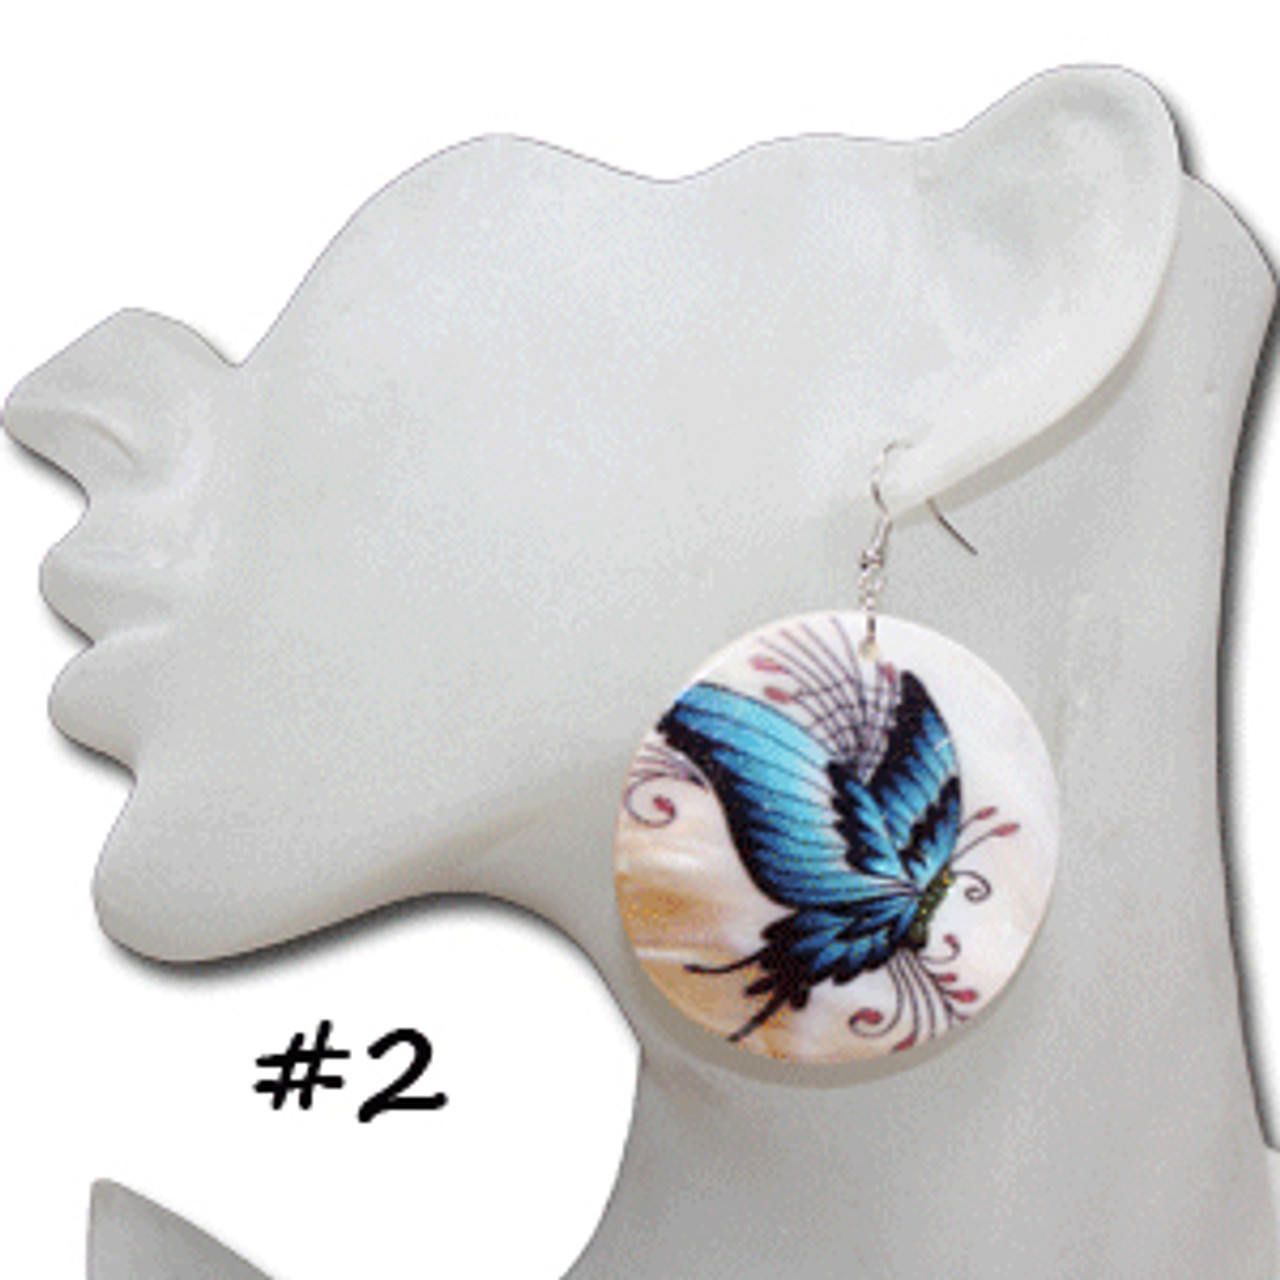 Cheap butterfly earrings